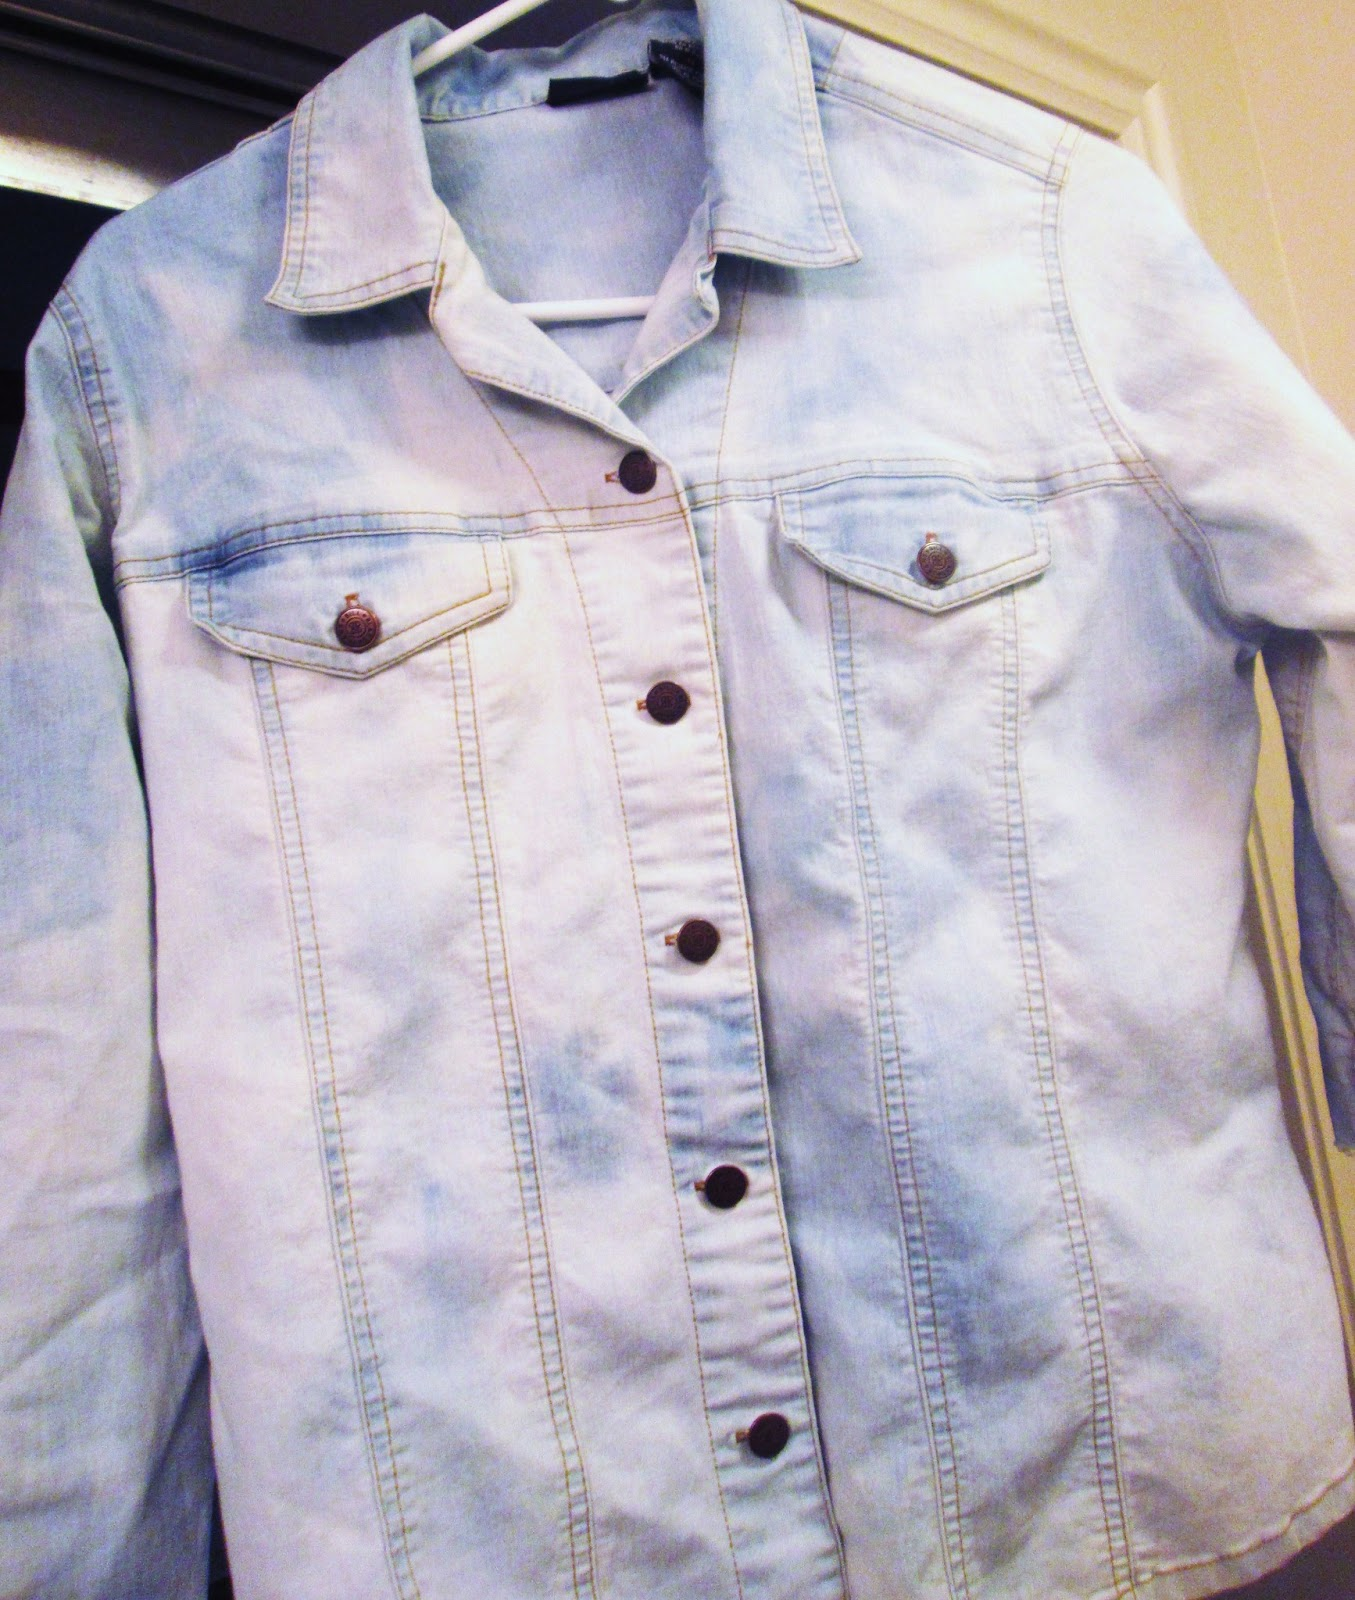 DIY: How to Bleach a Denim Shirt